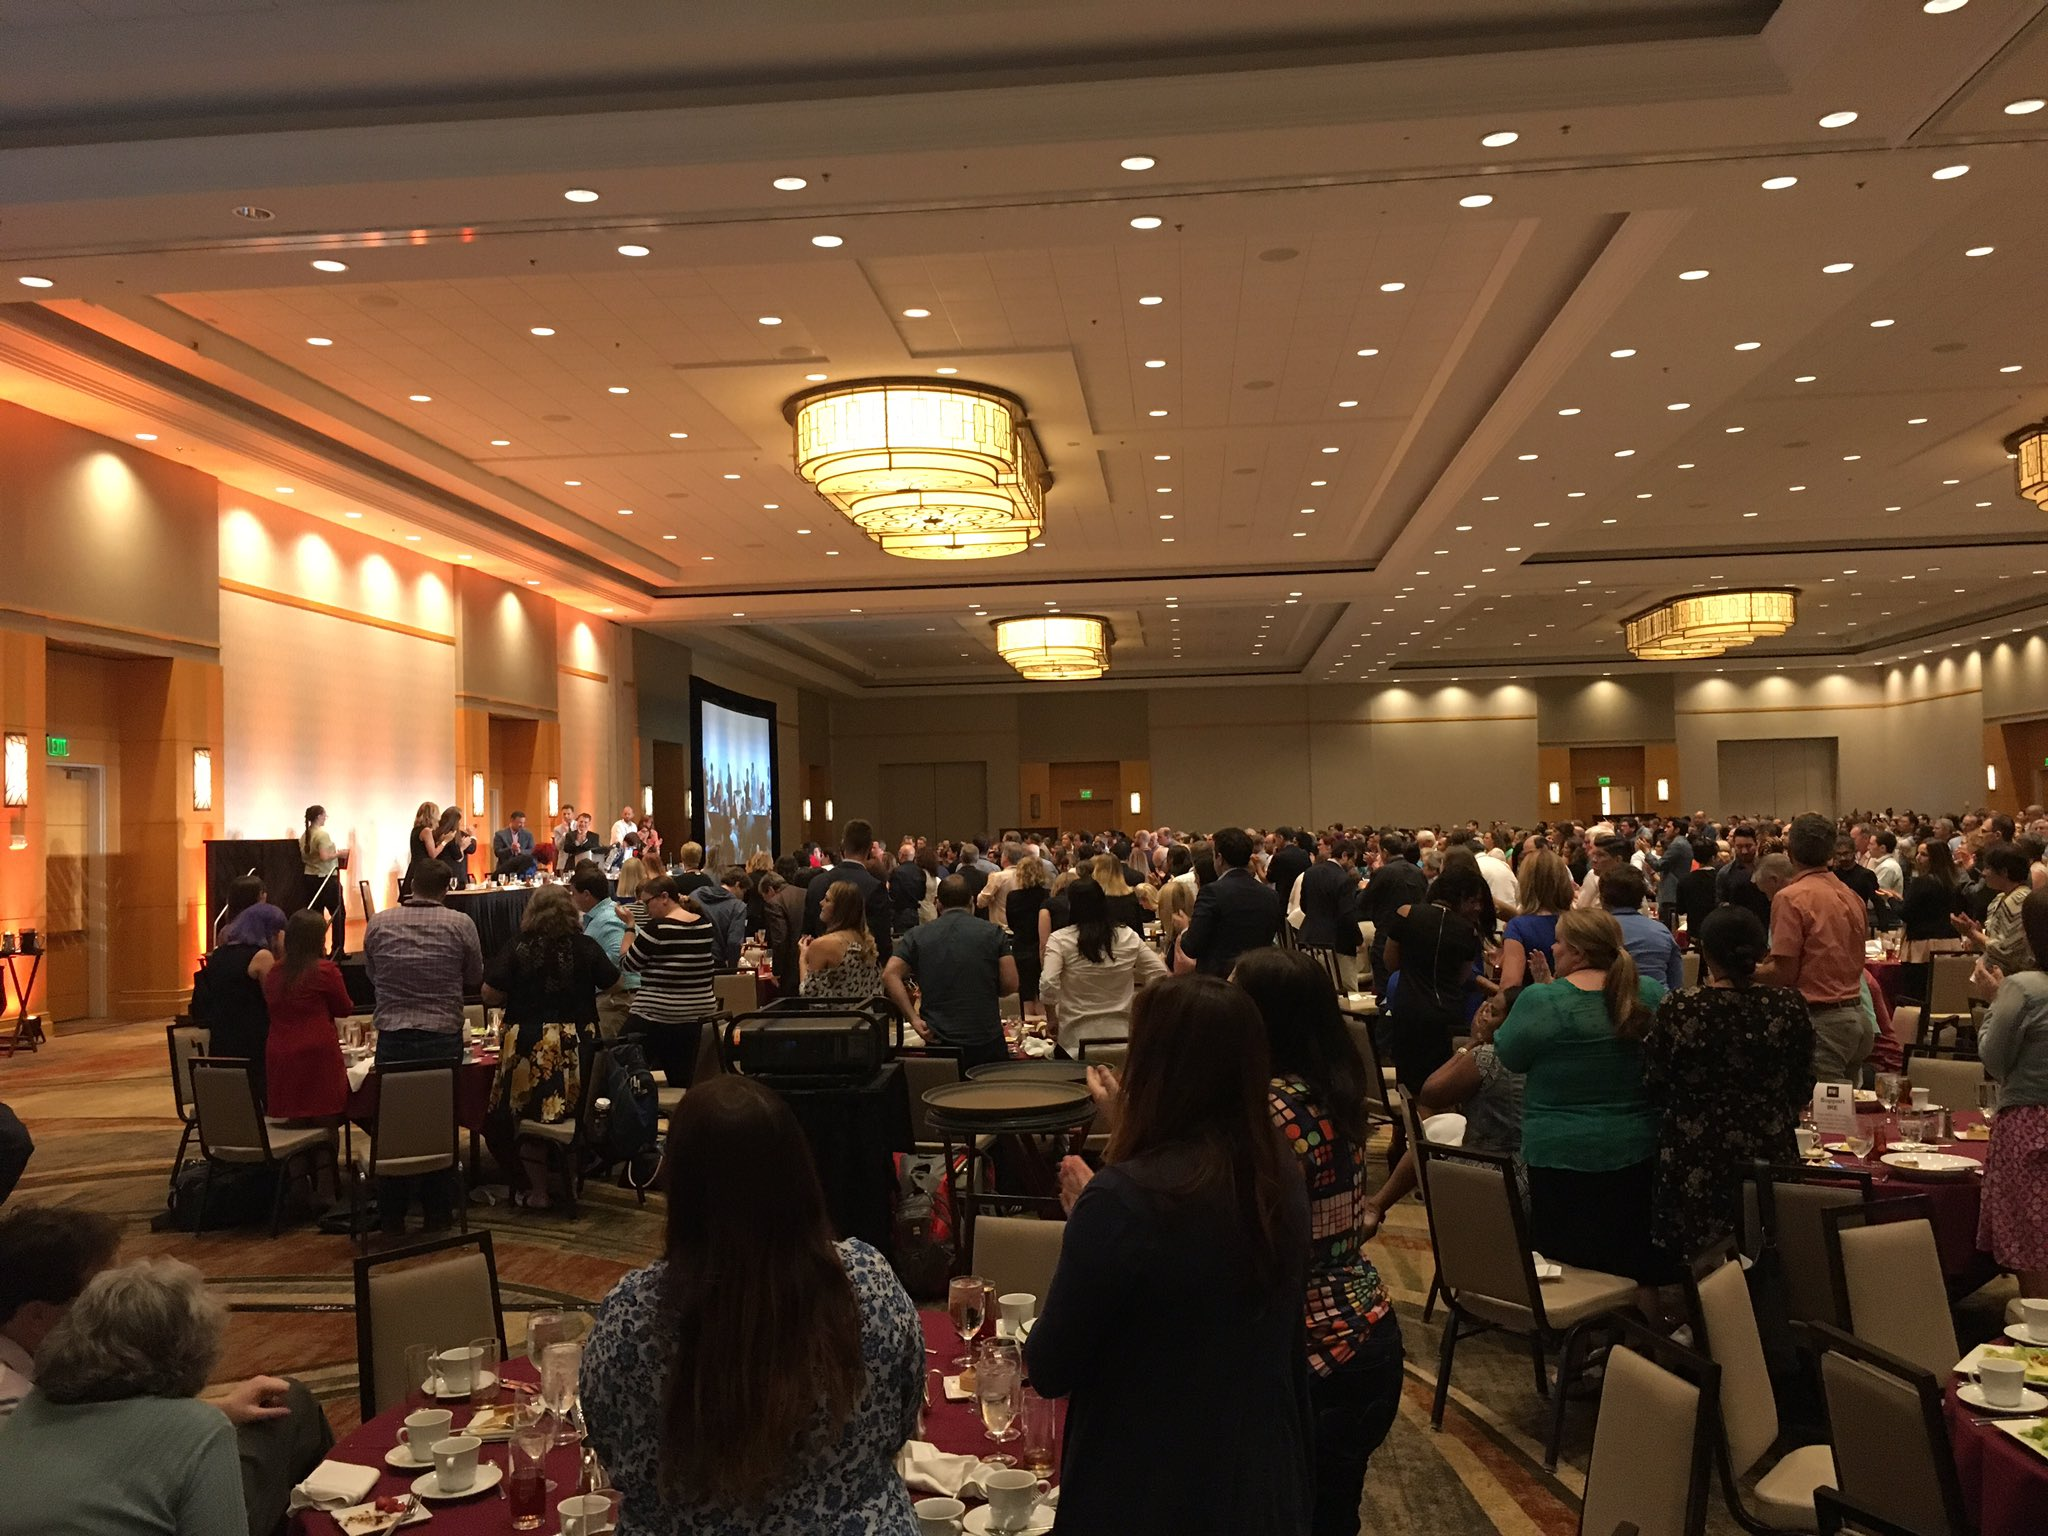 Standing ovation for @nhannahjones at @IRE_NICAR luncheon, as she calls for journalists to be outraged and do something about it. #IRE17 https://t.co/mM9qMzqFc8